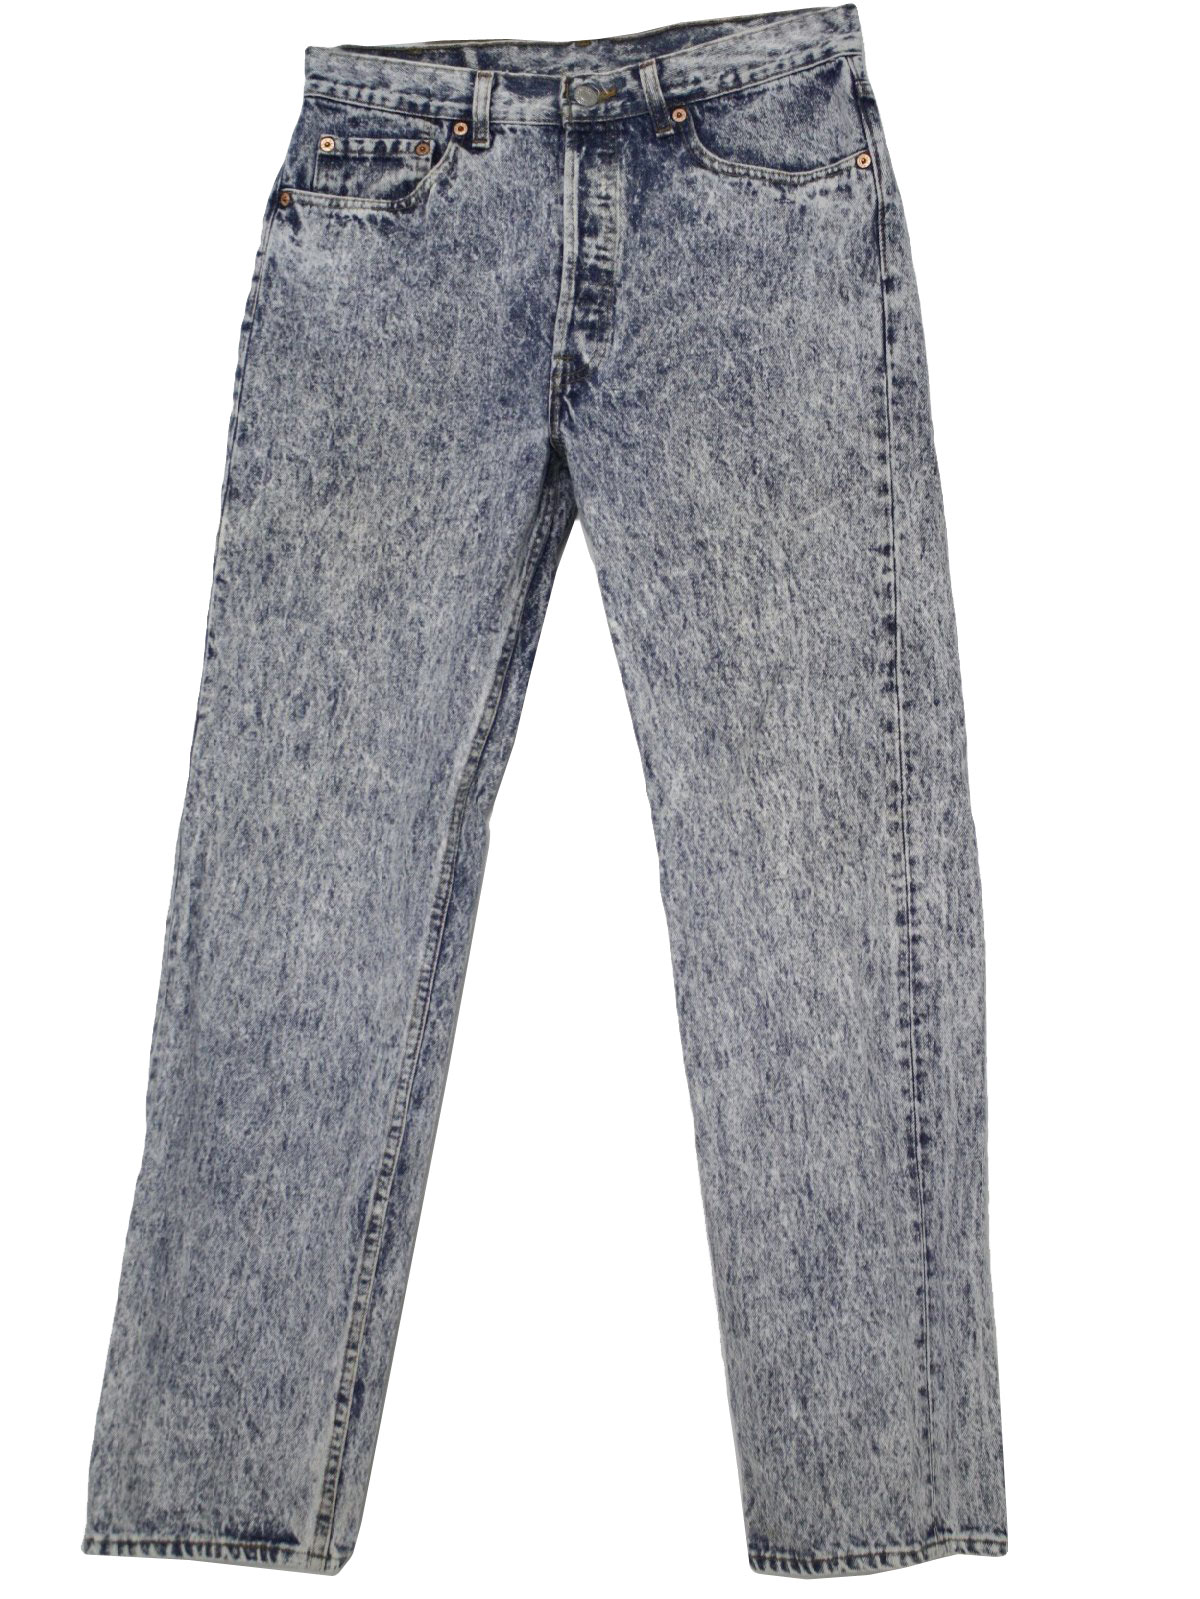 Acid wash jeans 80s men